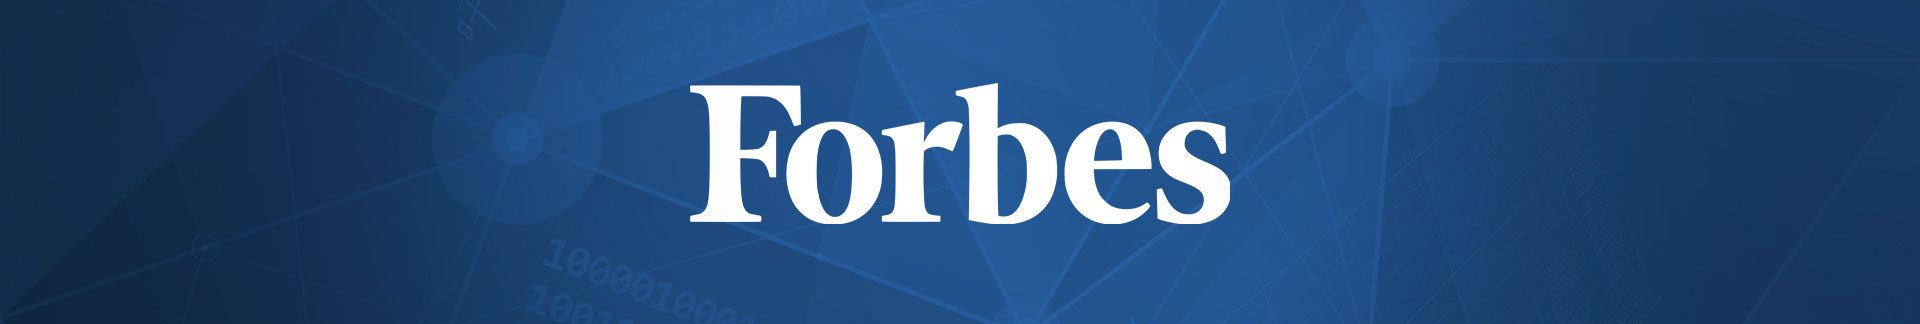 Forbes news banner